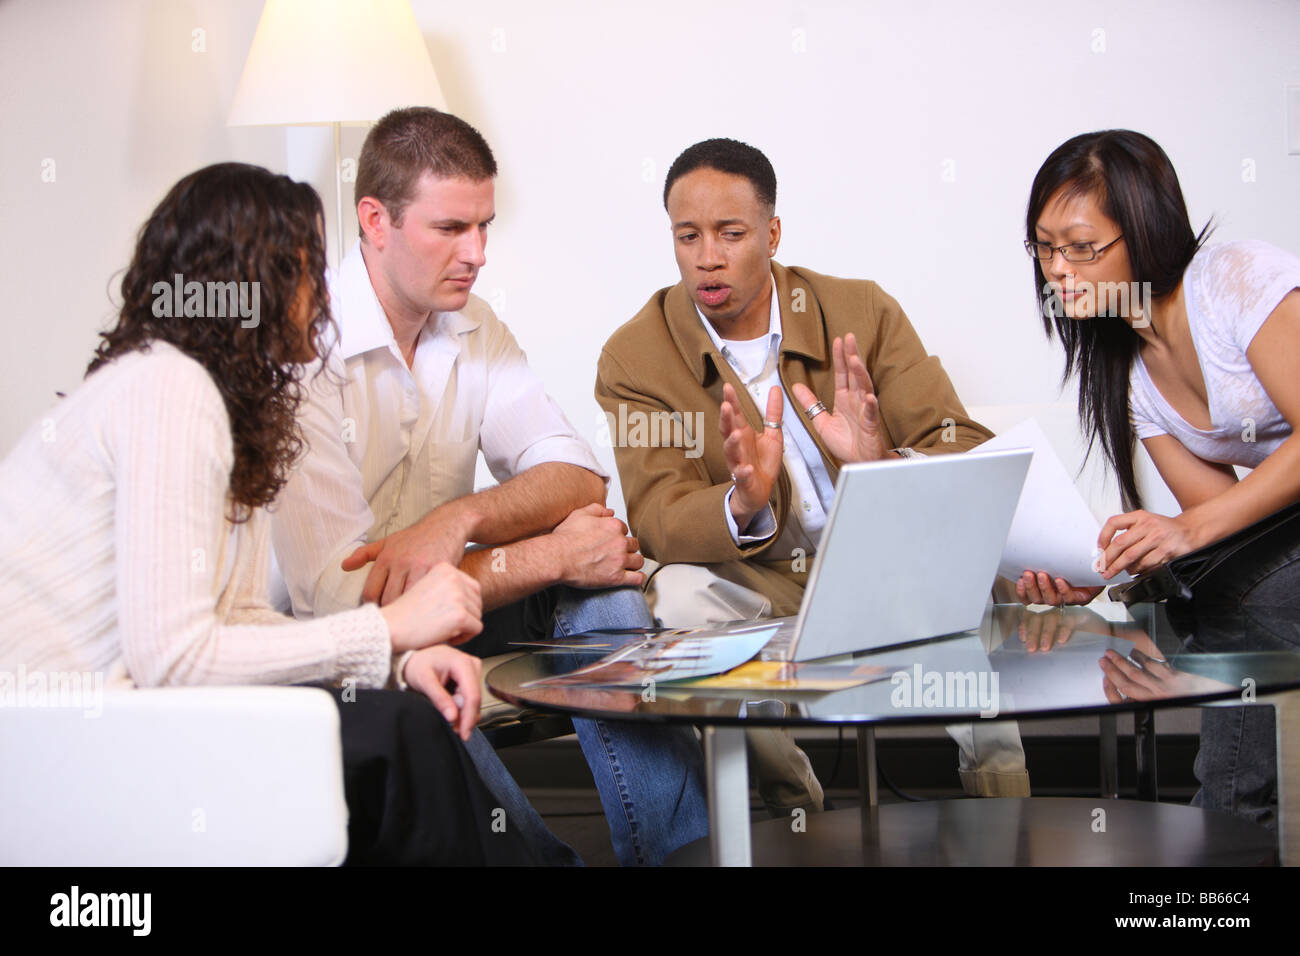 Group of young businesspeople brainstorming together with laptop - Stock Image